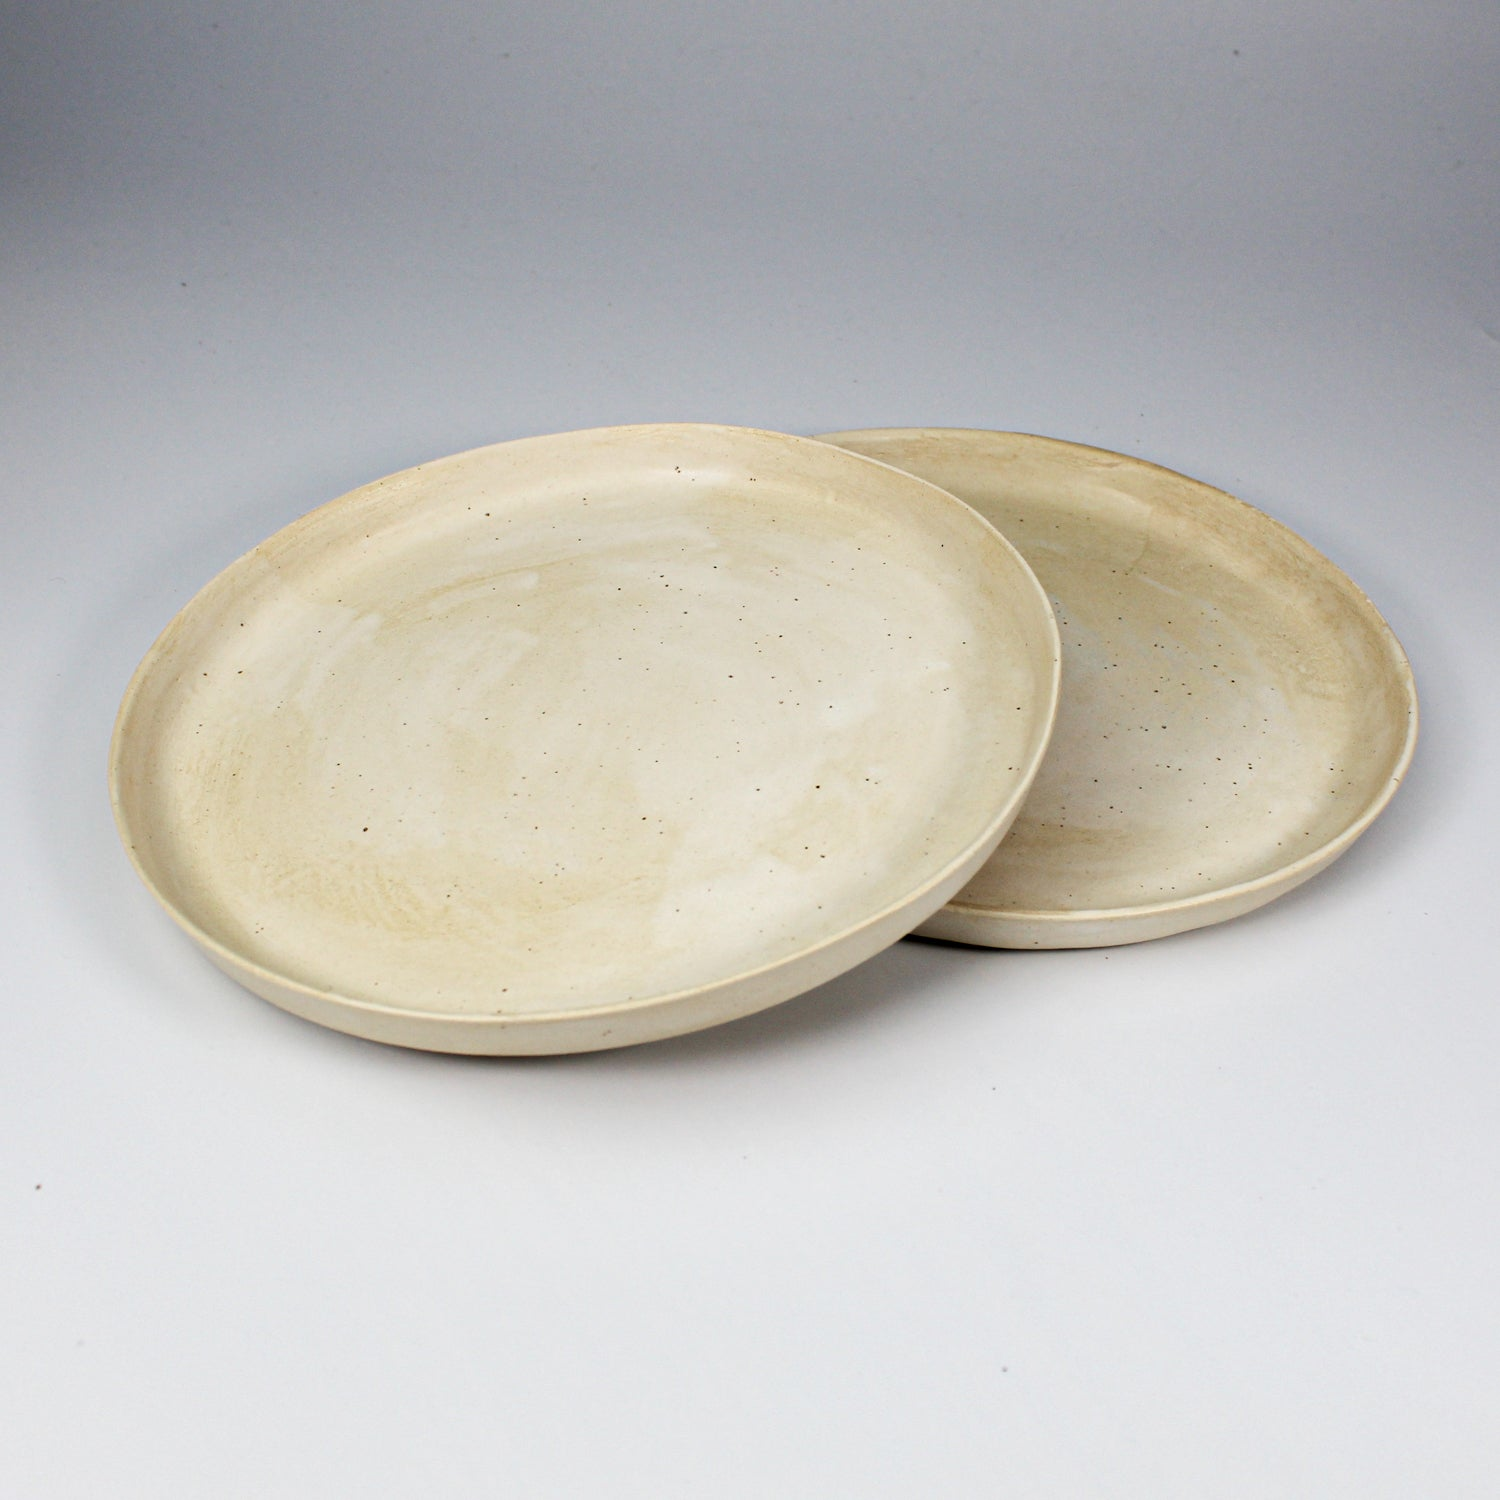 Pair of cream speckled side plates